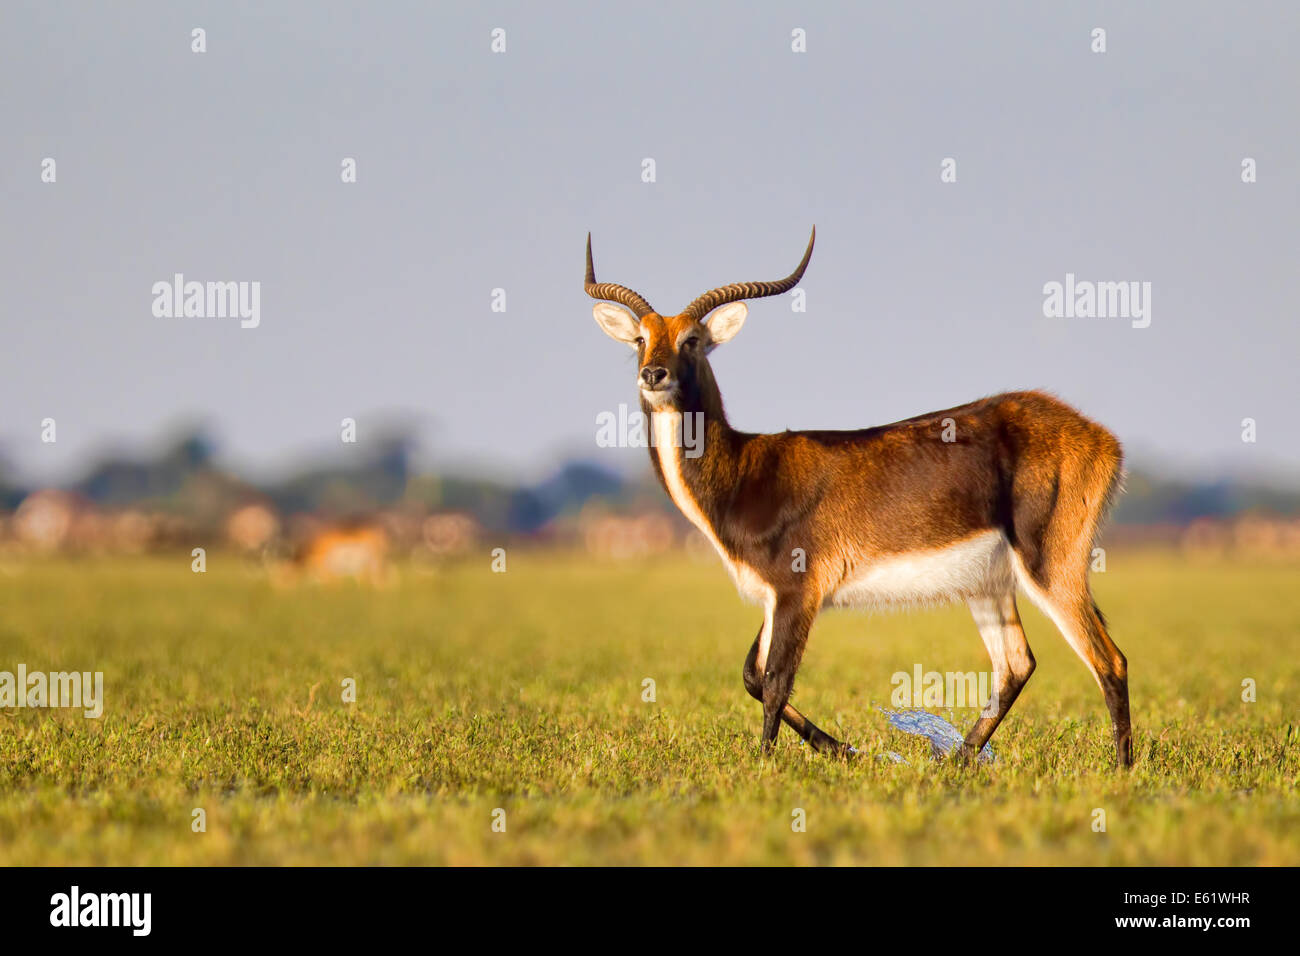 Bangweulu, Zambia, is the only place to see Black lechwe (Kobus leche smithemani) - Stock Image